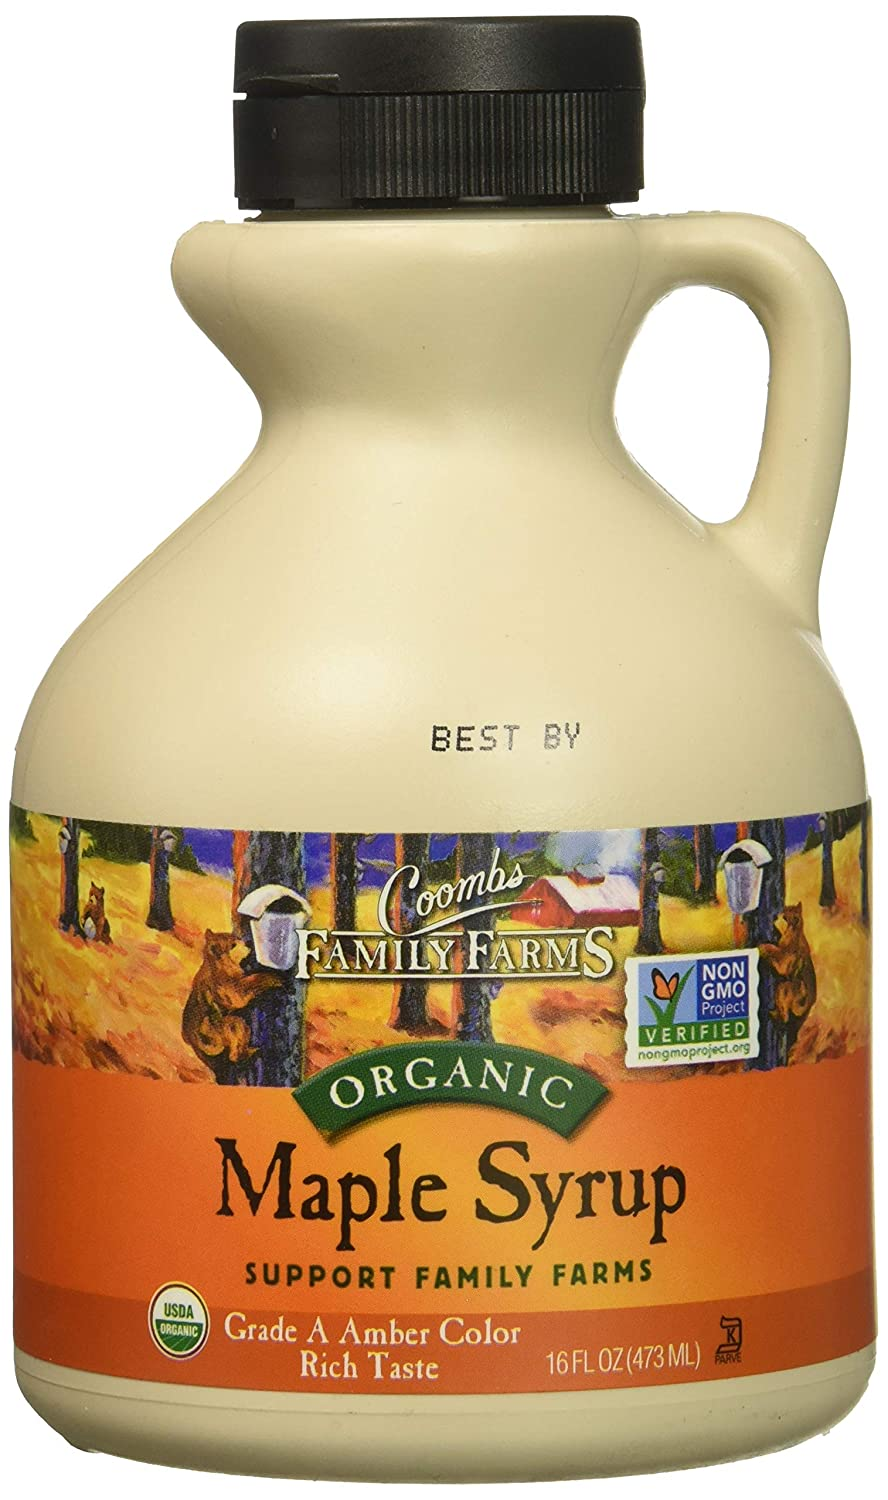 Coombs Family Farms Organic Maple Syrup, Grade A Amber Color, Rich Taste, 16 Fl Oz